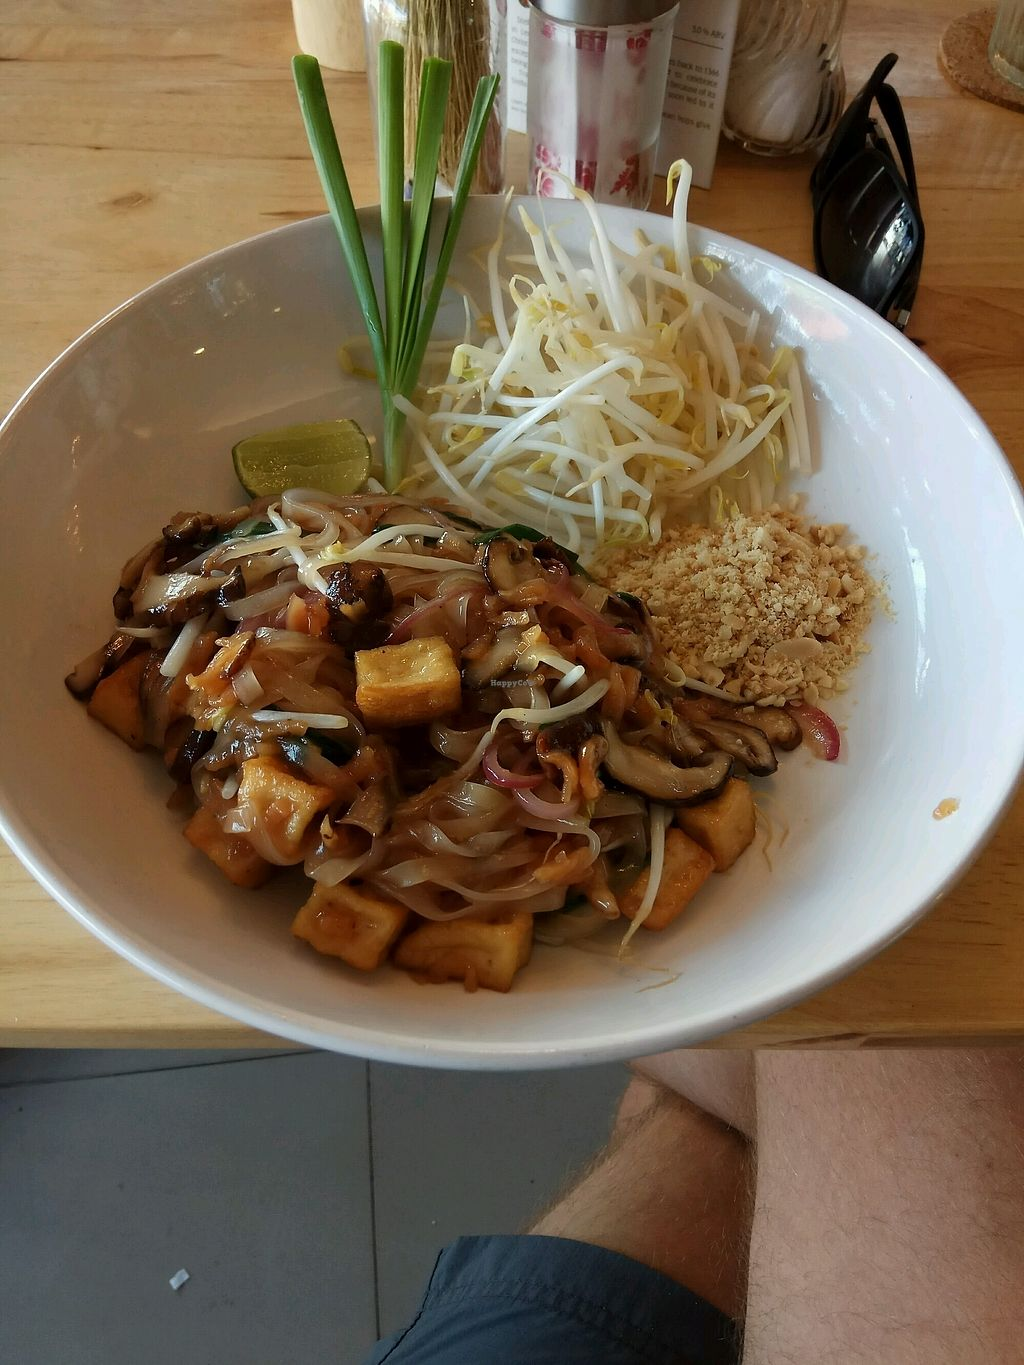 "Photo of Hua Hin Vegan Cafe and Wine  by <a href=""/members/profile/DomNowak"">DomNowak</a> <br/>pad thai <br/> December 9, 2017  - <a href='/contact/abuse/image/95513/333808'>Report</a>"